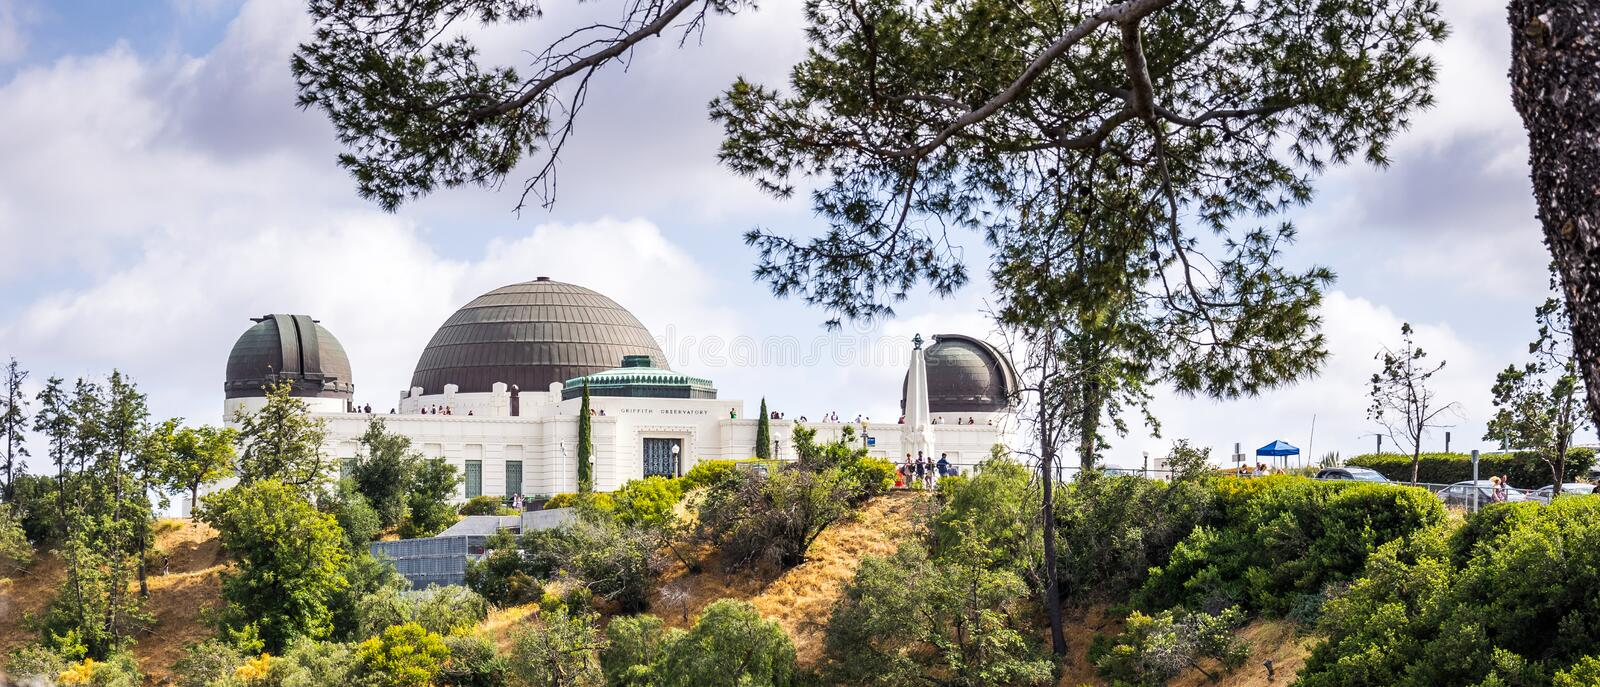 Astronomical Observatory and Griffith Park. Tourist attraction of the DLOS of Angeles, CA royalty free stock photography